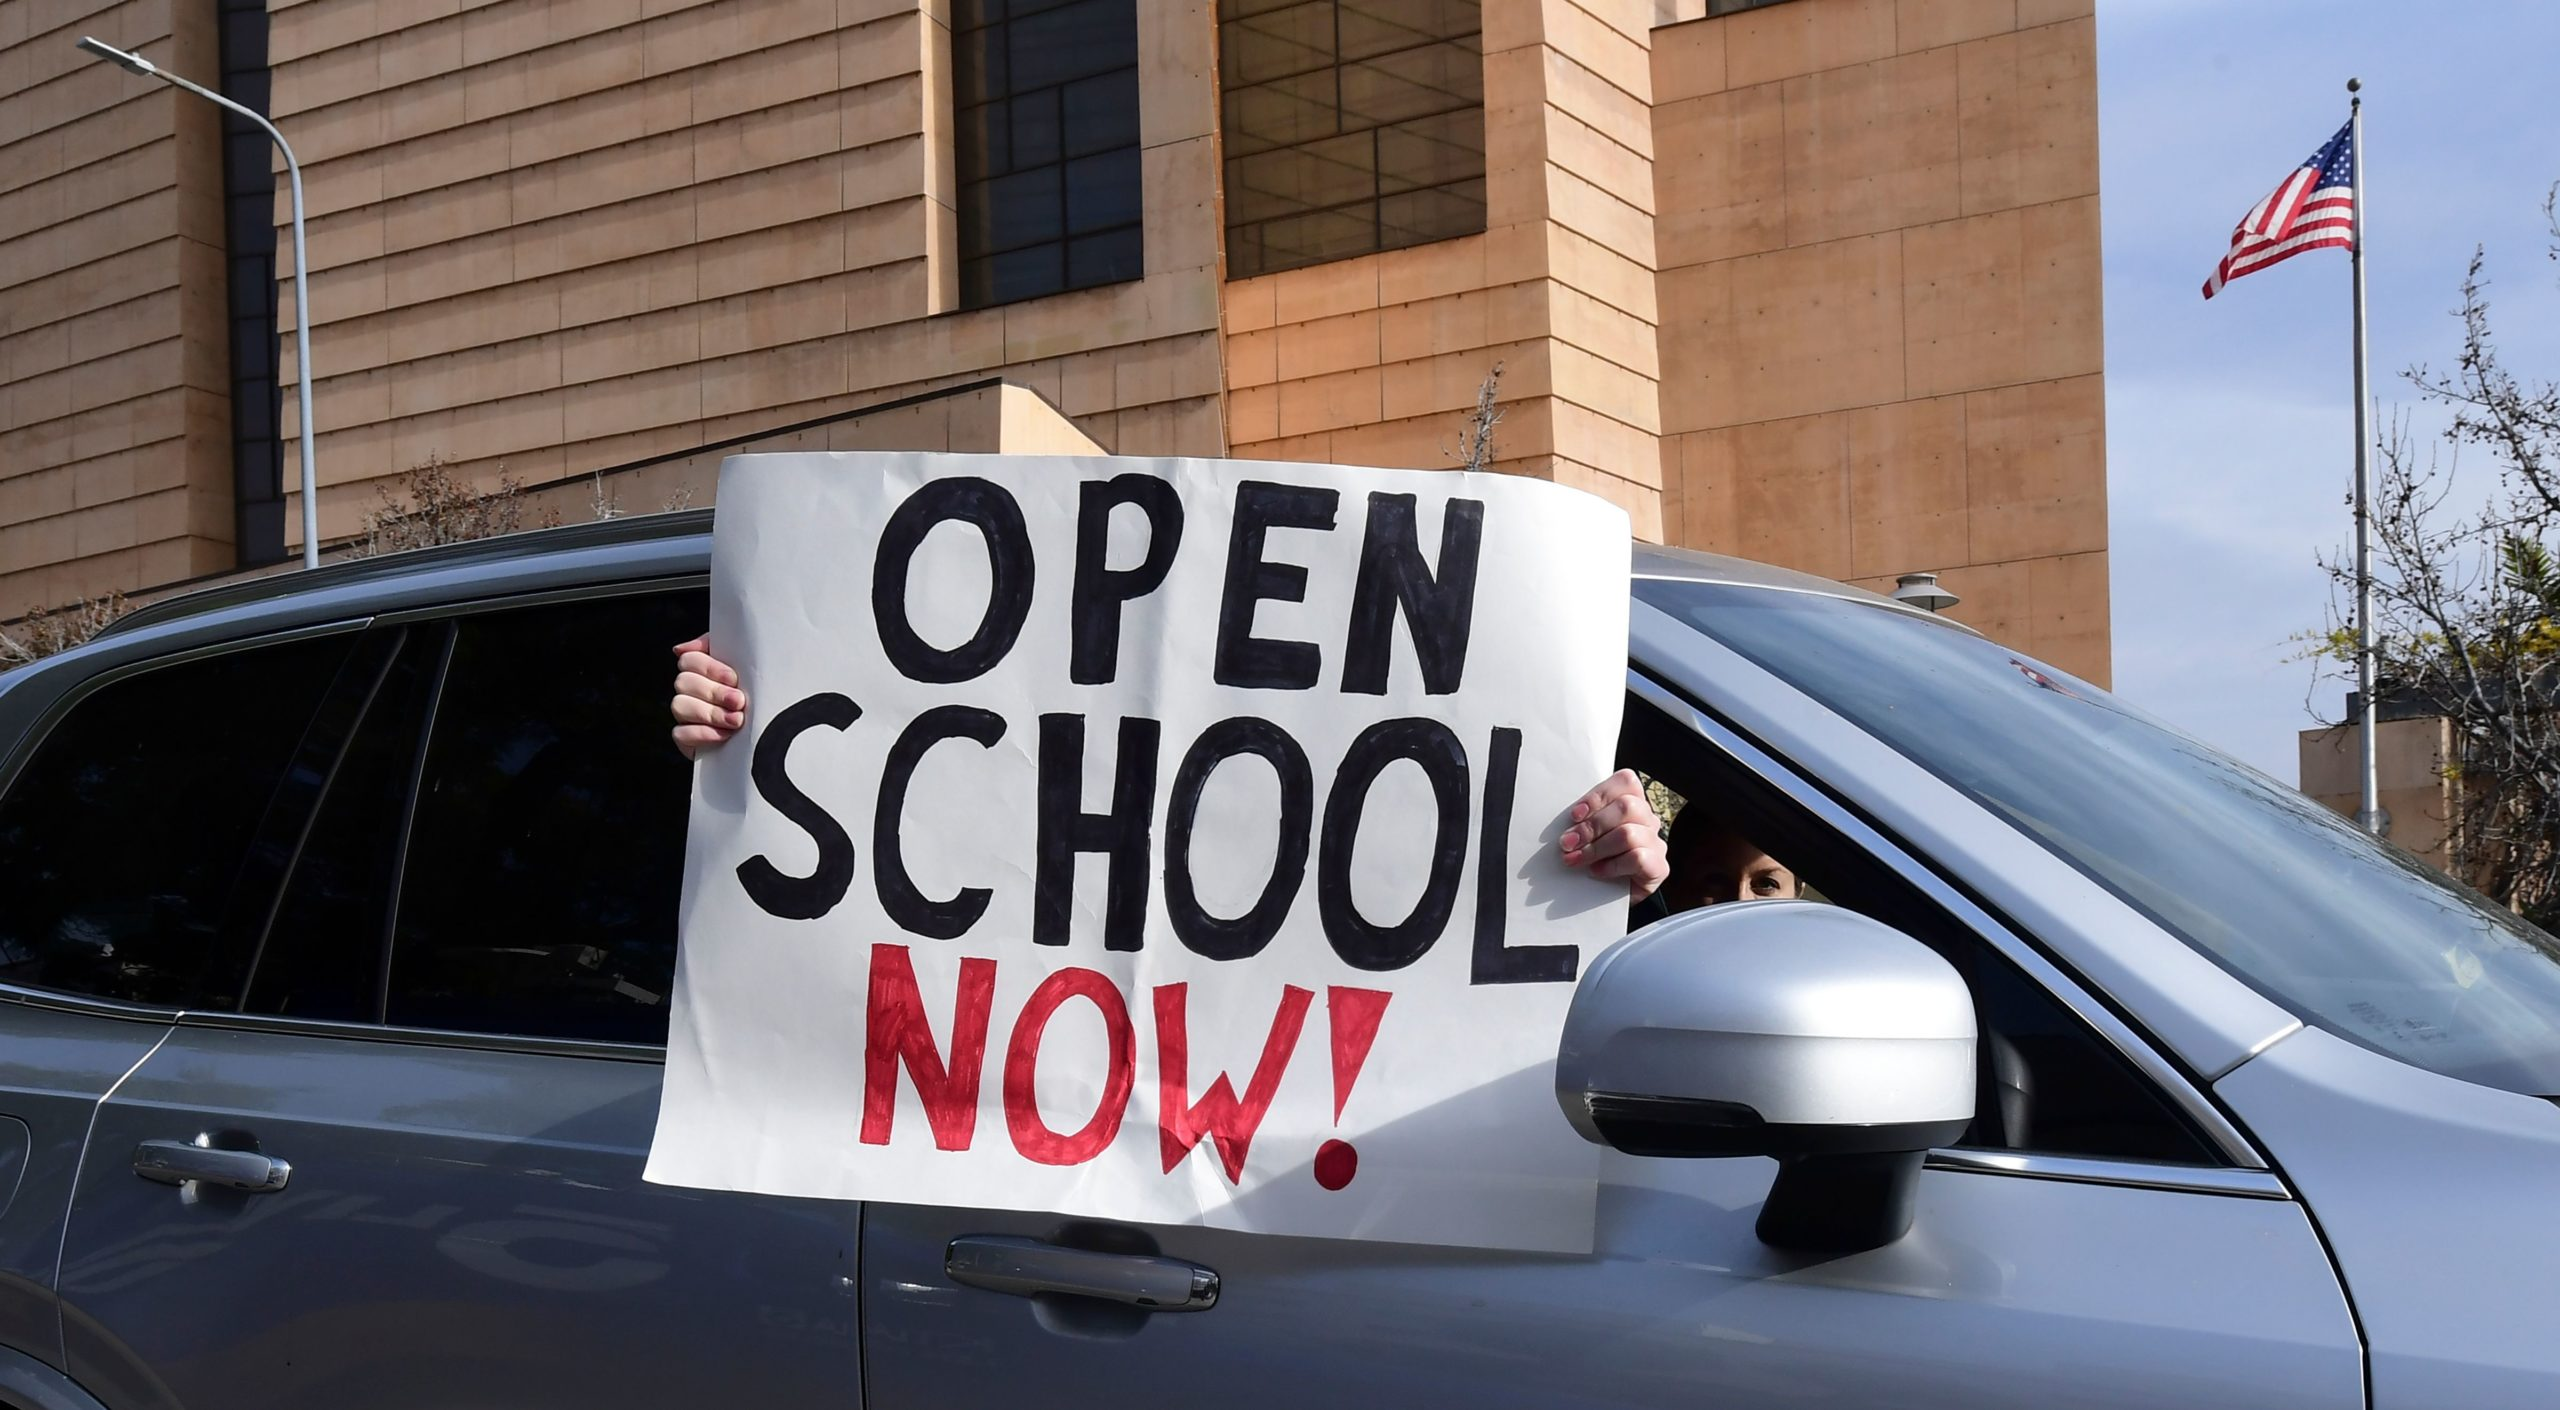 """Signs calling for schools to reopen are displayed by people in passing vehicles during an """"Open Schools Now"""" rally via car caravan by supporters of The Students First Coalition of Los Angeles on February 15, 2021 in Los Angeles, California. (Photo by FREDERIC J. BROWN/AFP via Getty Images)"""